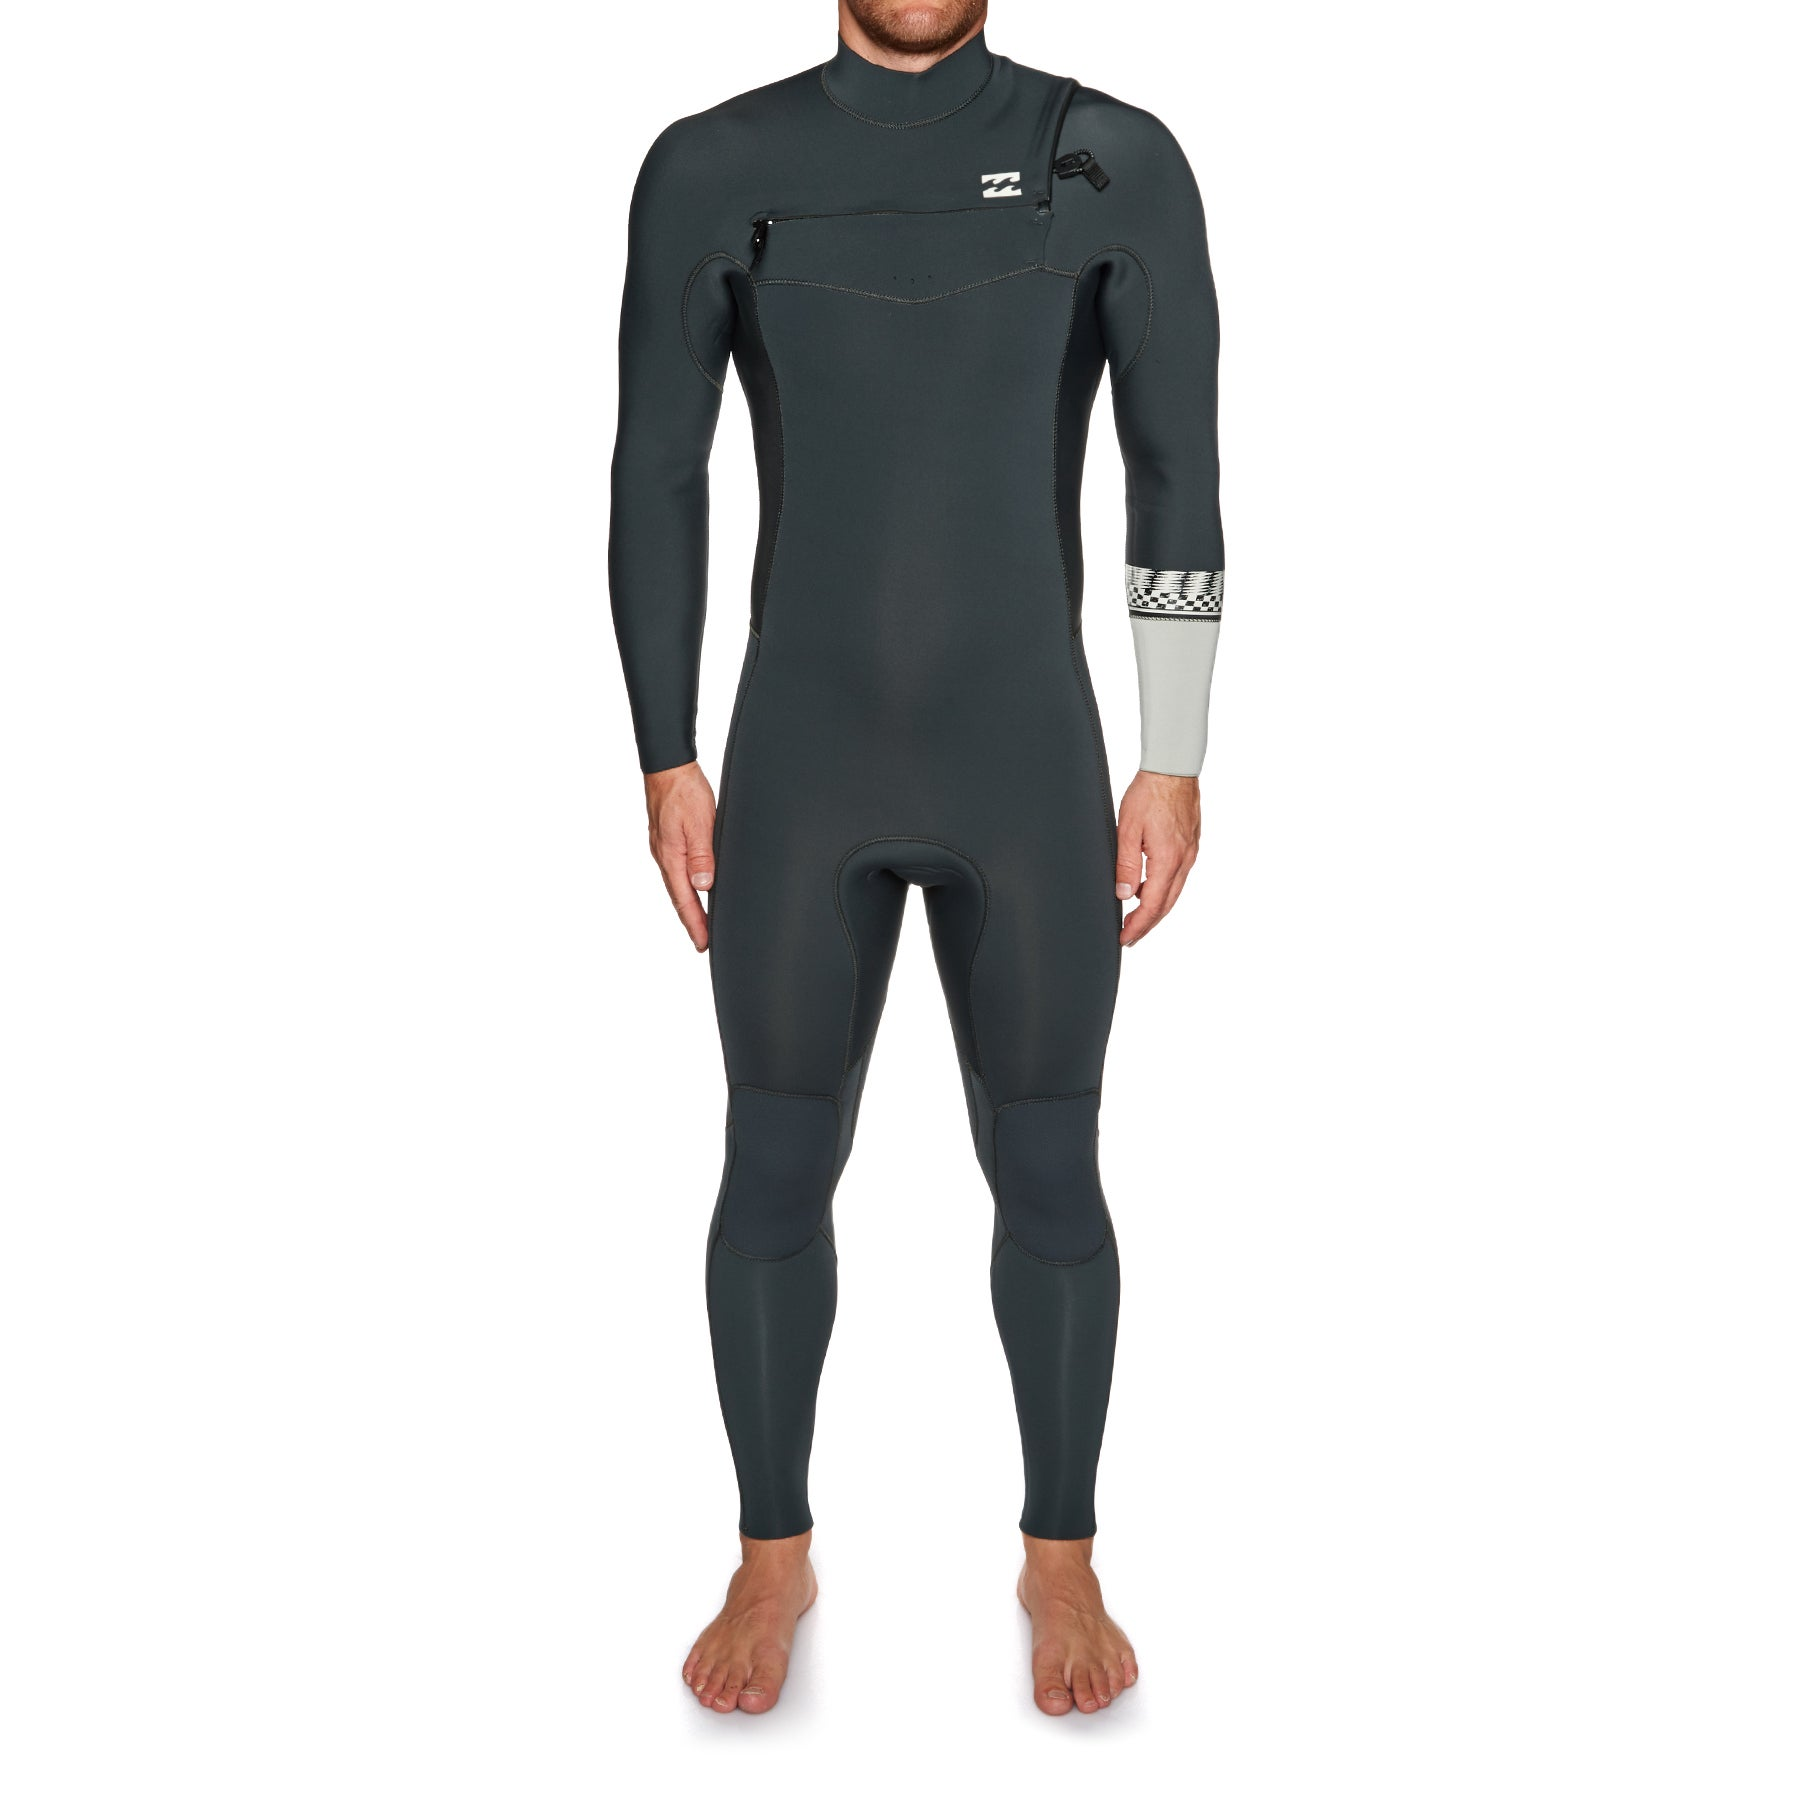 Billabong Furnace Revolution 4/3mm 2019 Chest Zip Wetsuit - Graphite